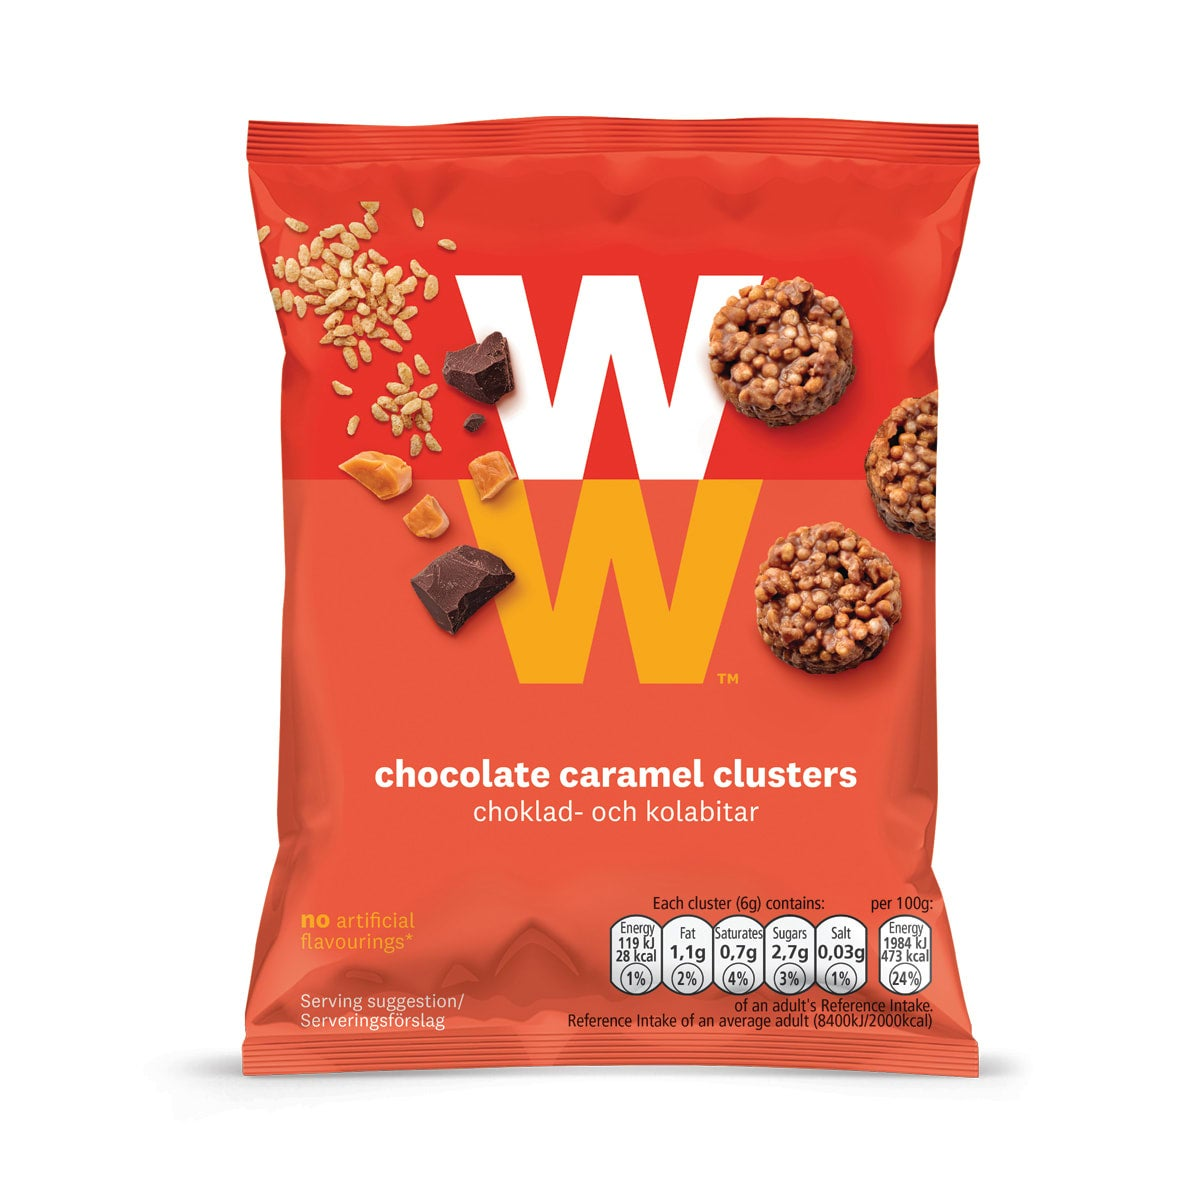 WW Chocolate Caramel Clusters, milk chocolate and caramel coated crisped cereal clusters, 1 SmartPoint per cluster